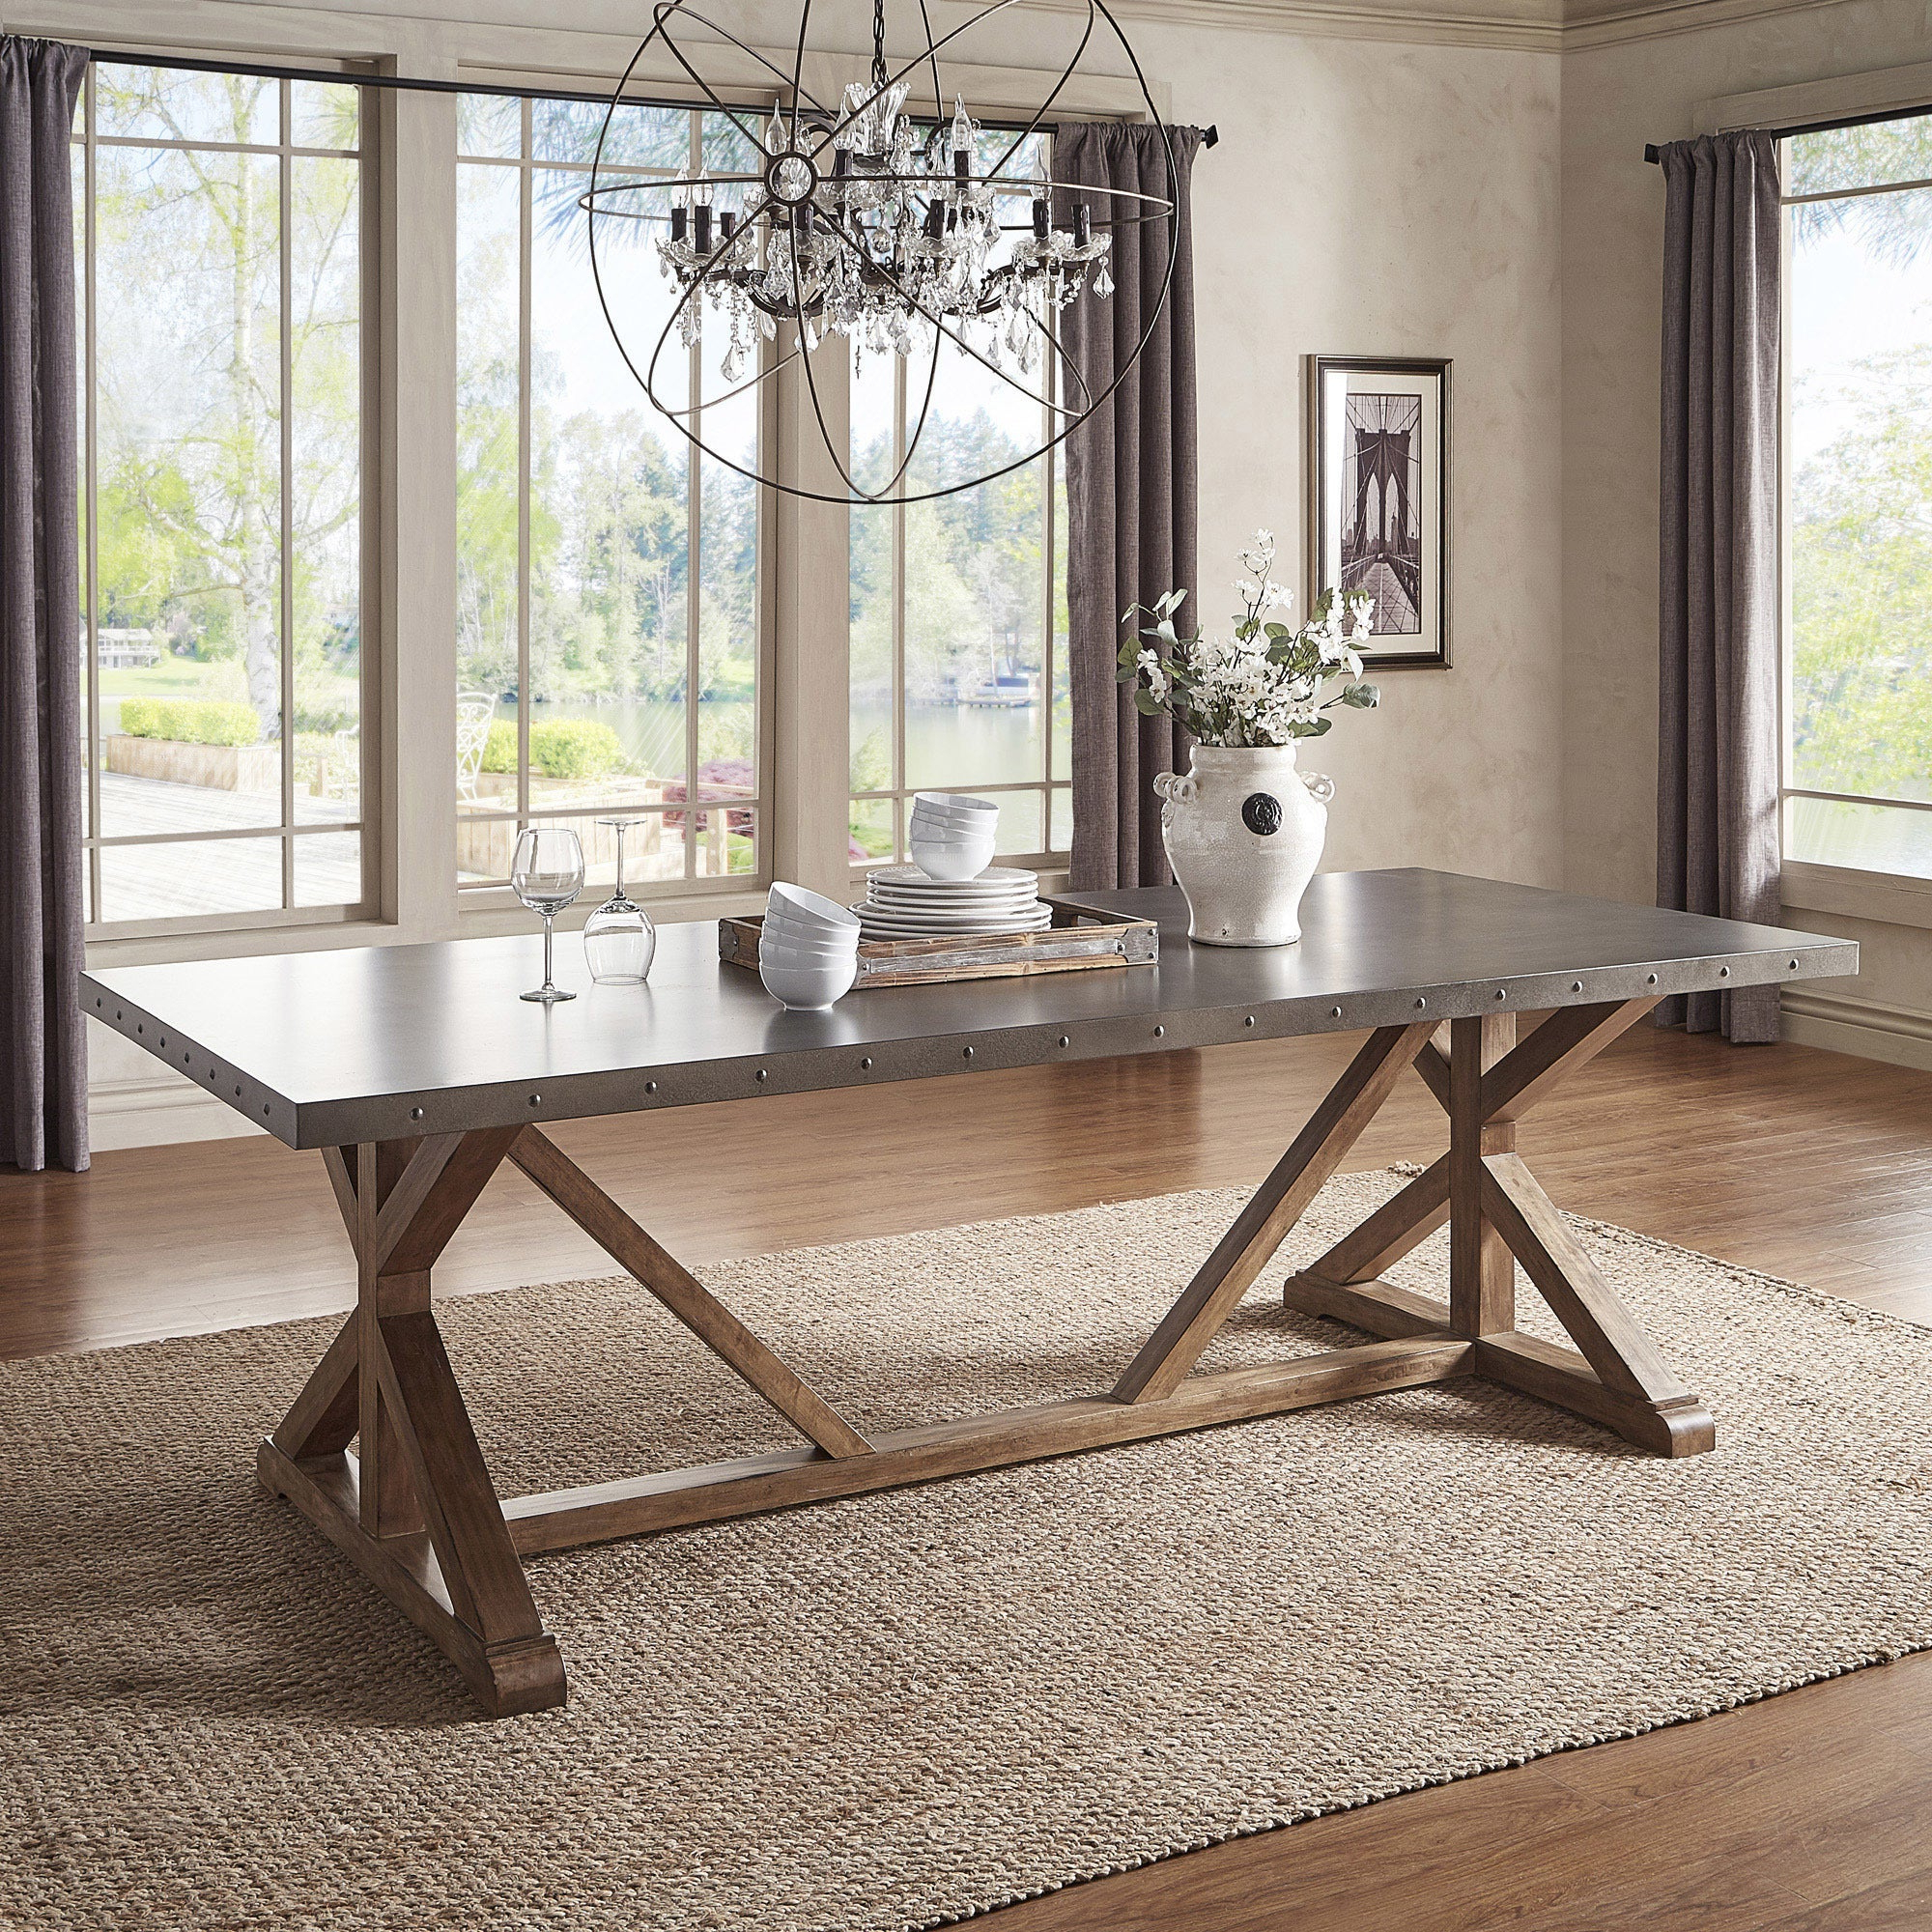 Wood Top Dining Tables With Regard To Well Known Albee Rectangular Stainless Steel Top Dining Table With Poplar X Base Inspire Q Artisan – Grey (View 18 of 25)